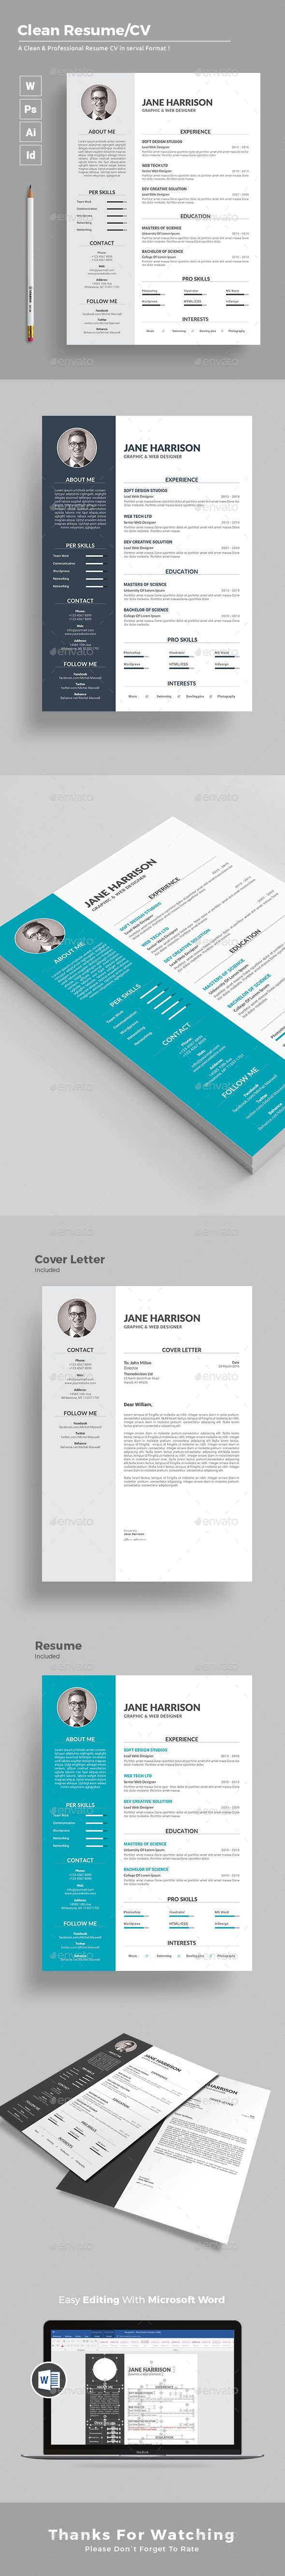 bartender job description resume%0A  Resume  Resumes Stationery Download here  https   graphicriver net